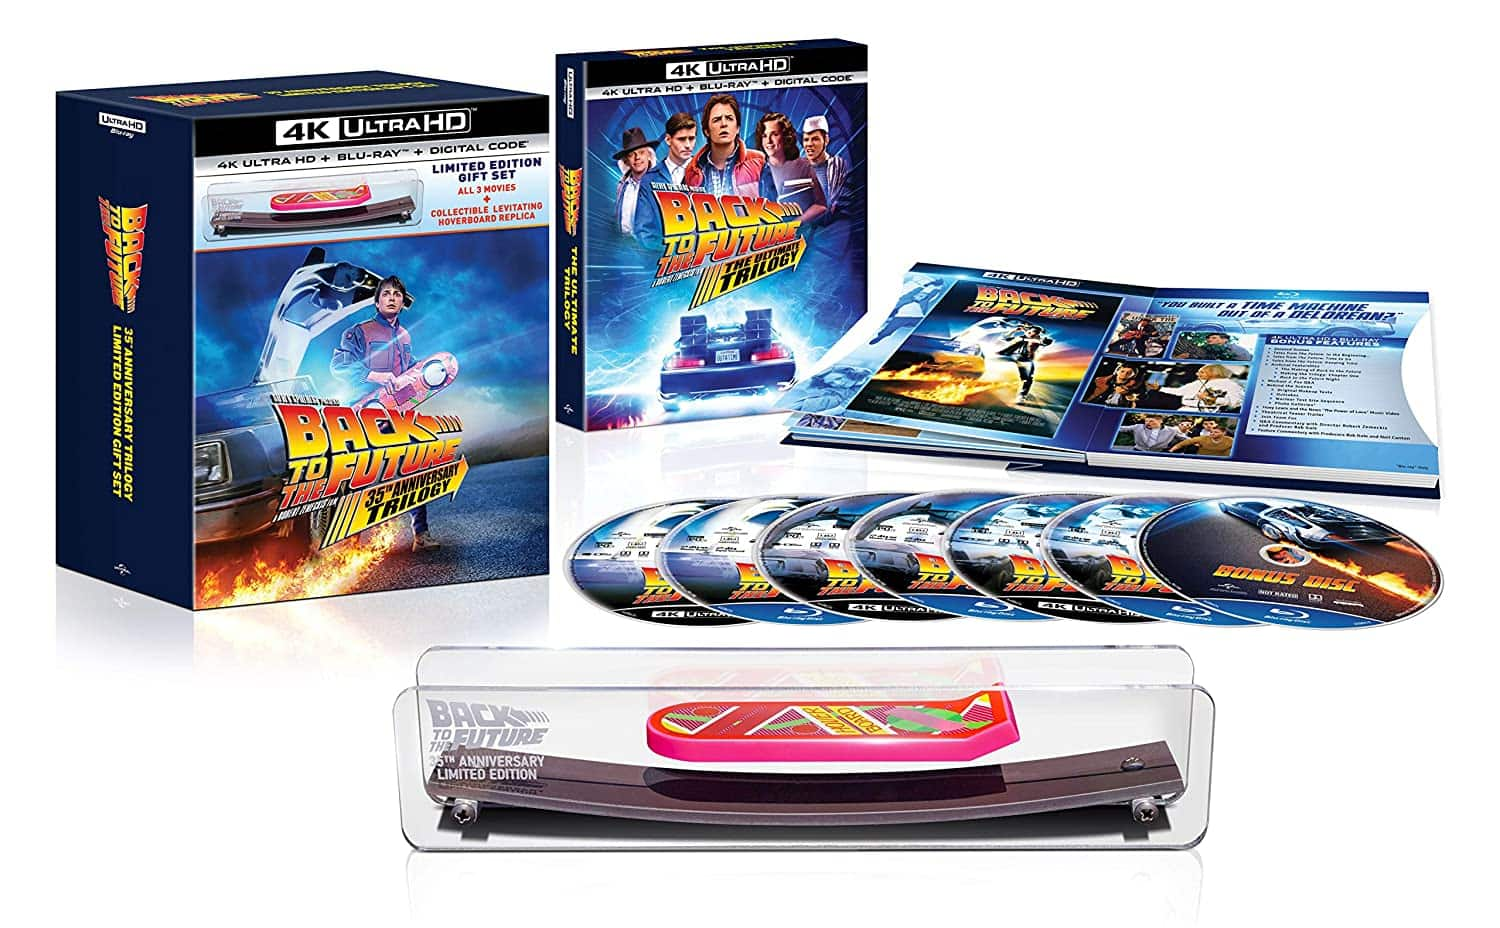 Back to The Future 4K UHD 35th Anniversary Giftset with Hoverboard- $80